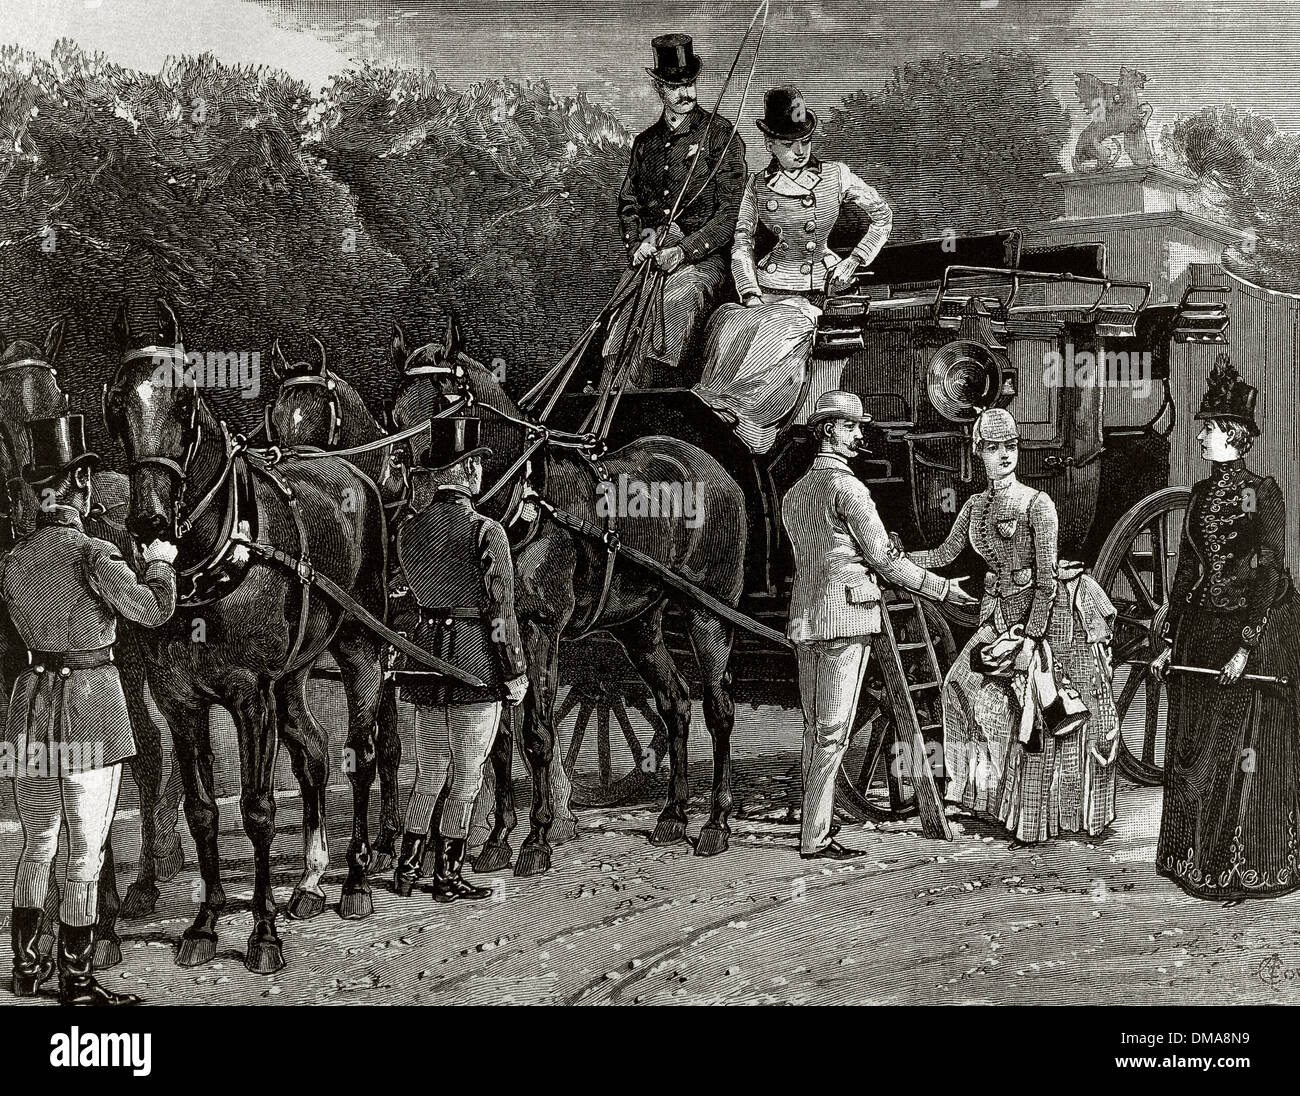 Bourgeois family goodbye. Engraving by Haroyle, 1892. - Stock Image